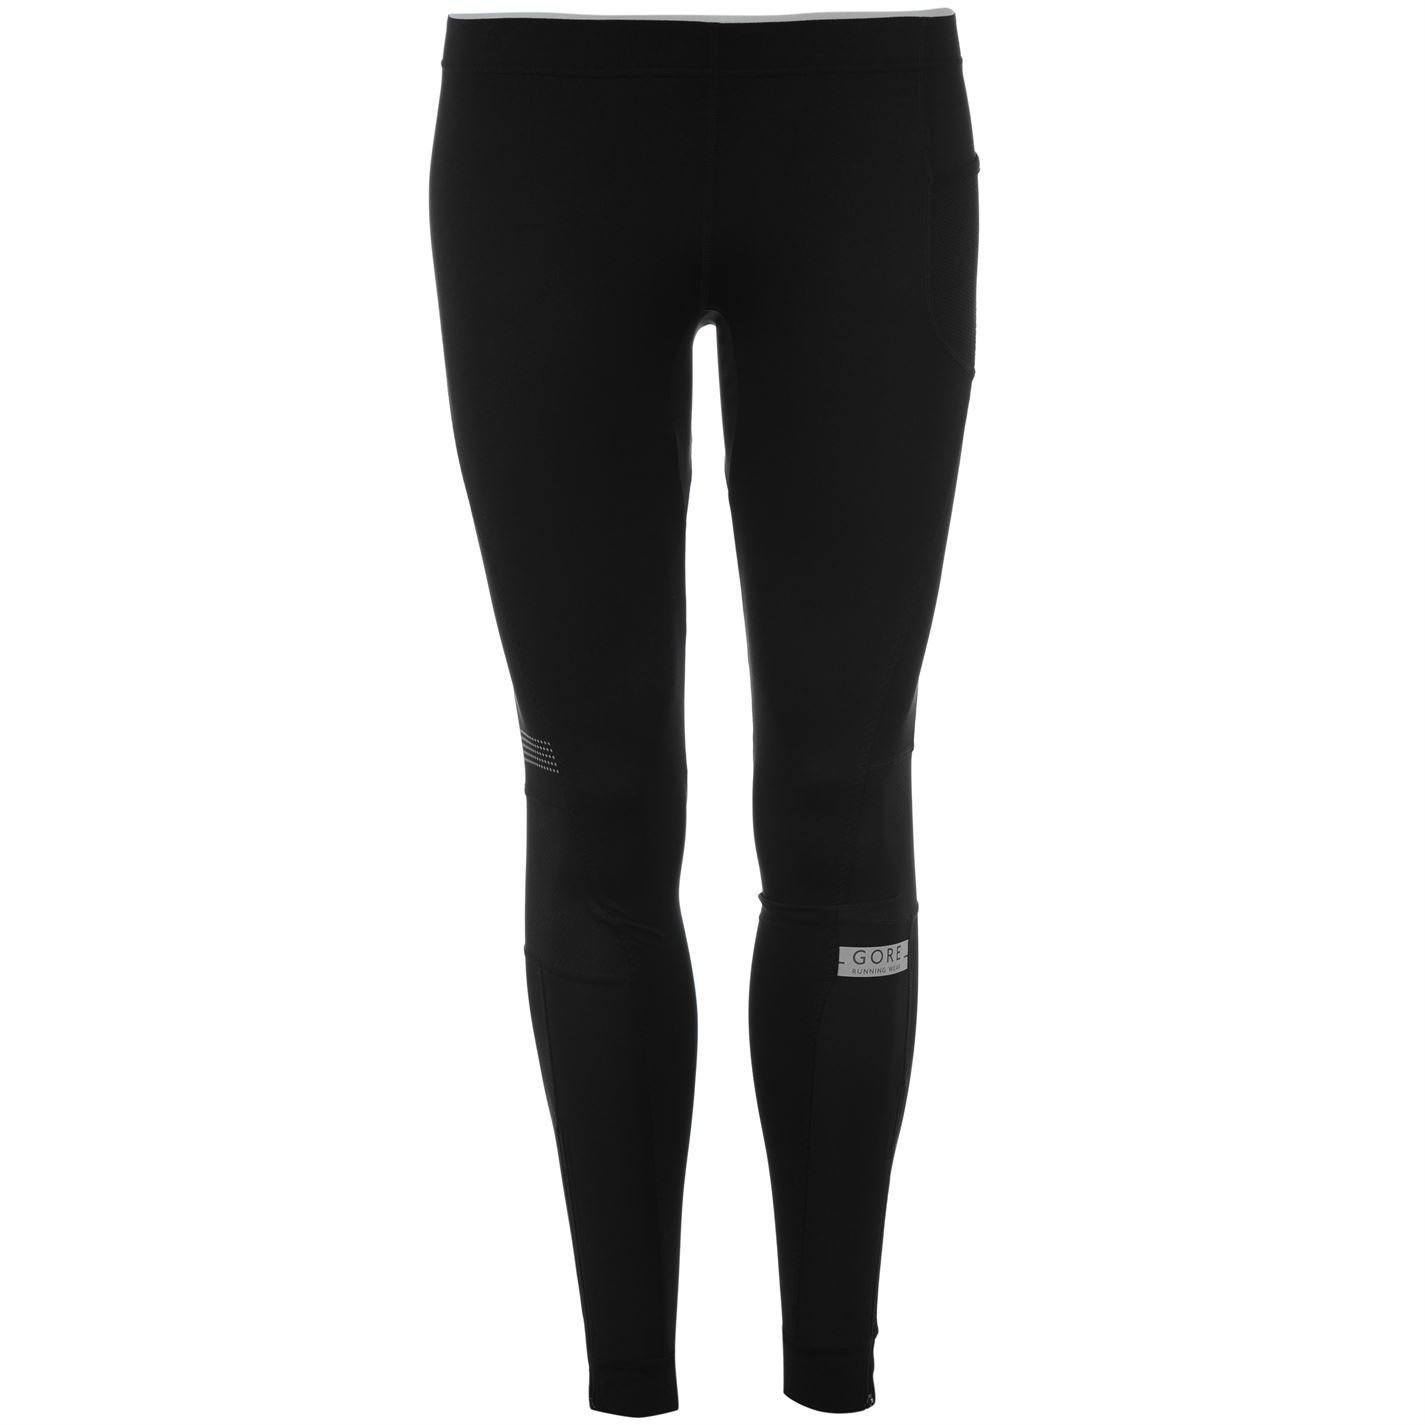 Gore Womens Tight lon Air Sports Running Tights Ladies Pants Bottoms